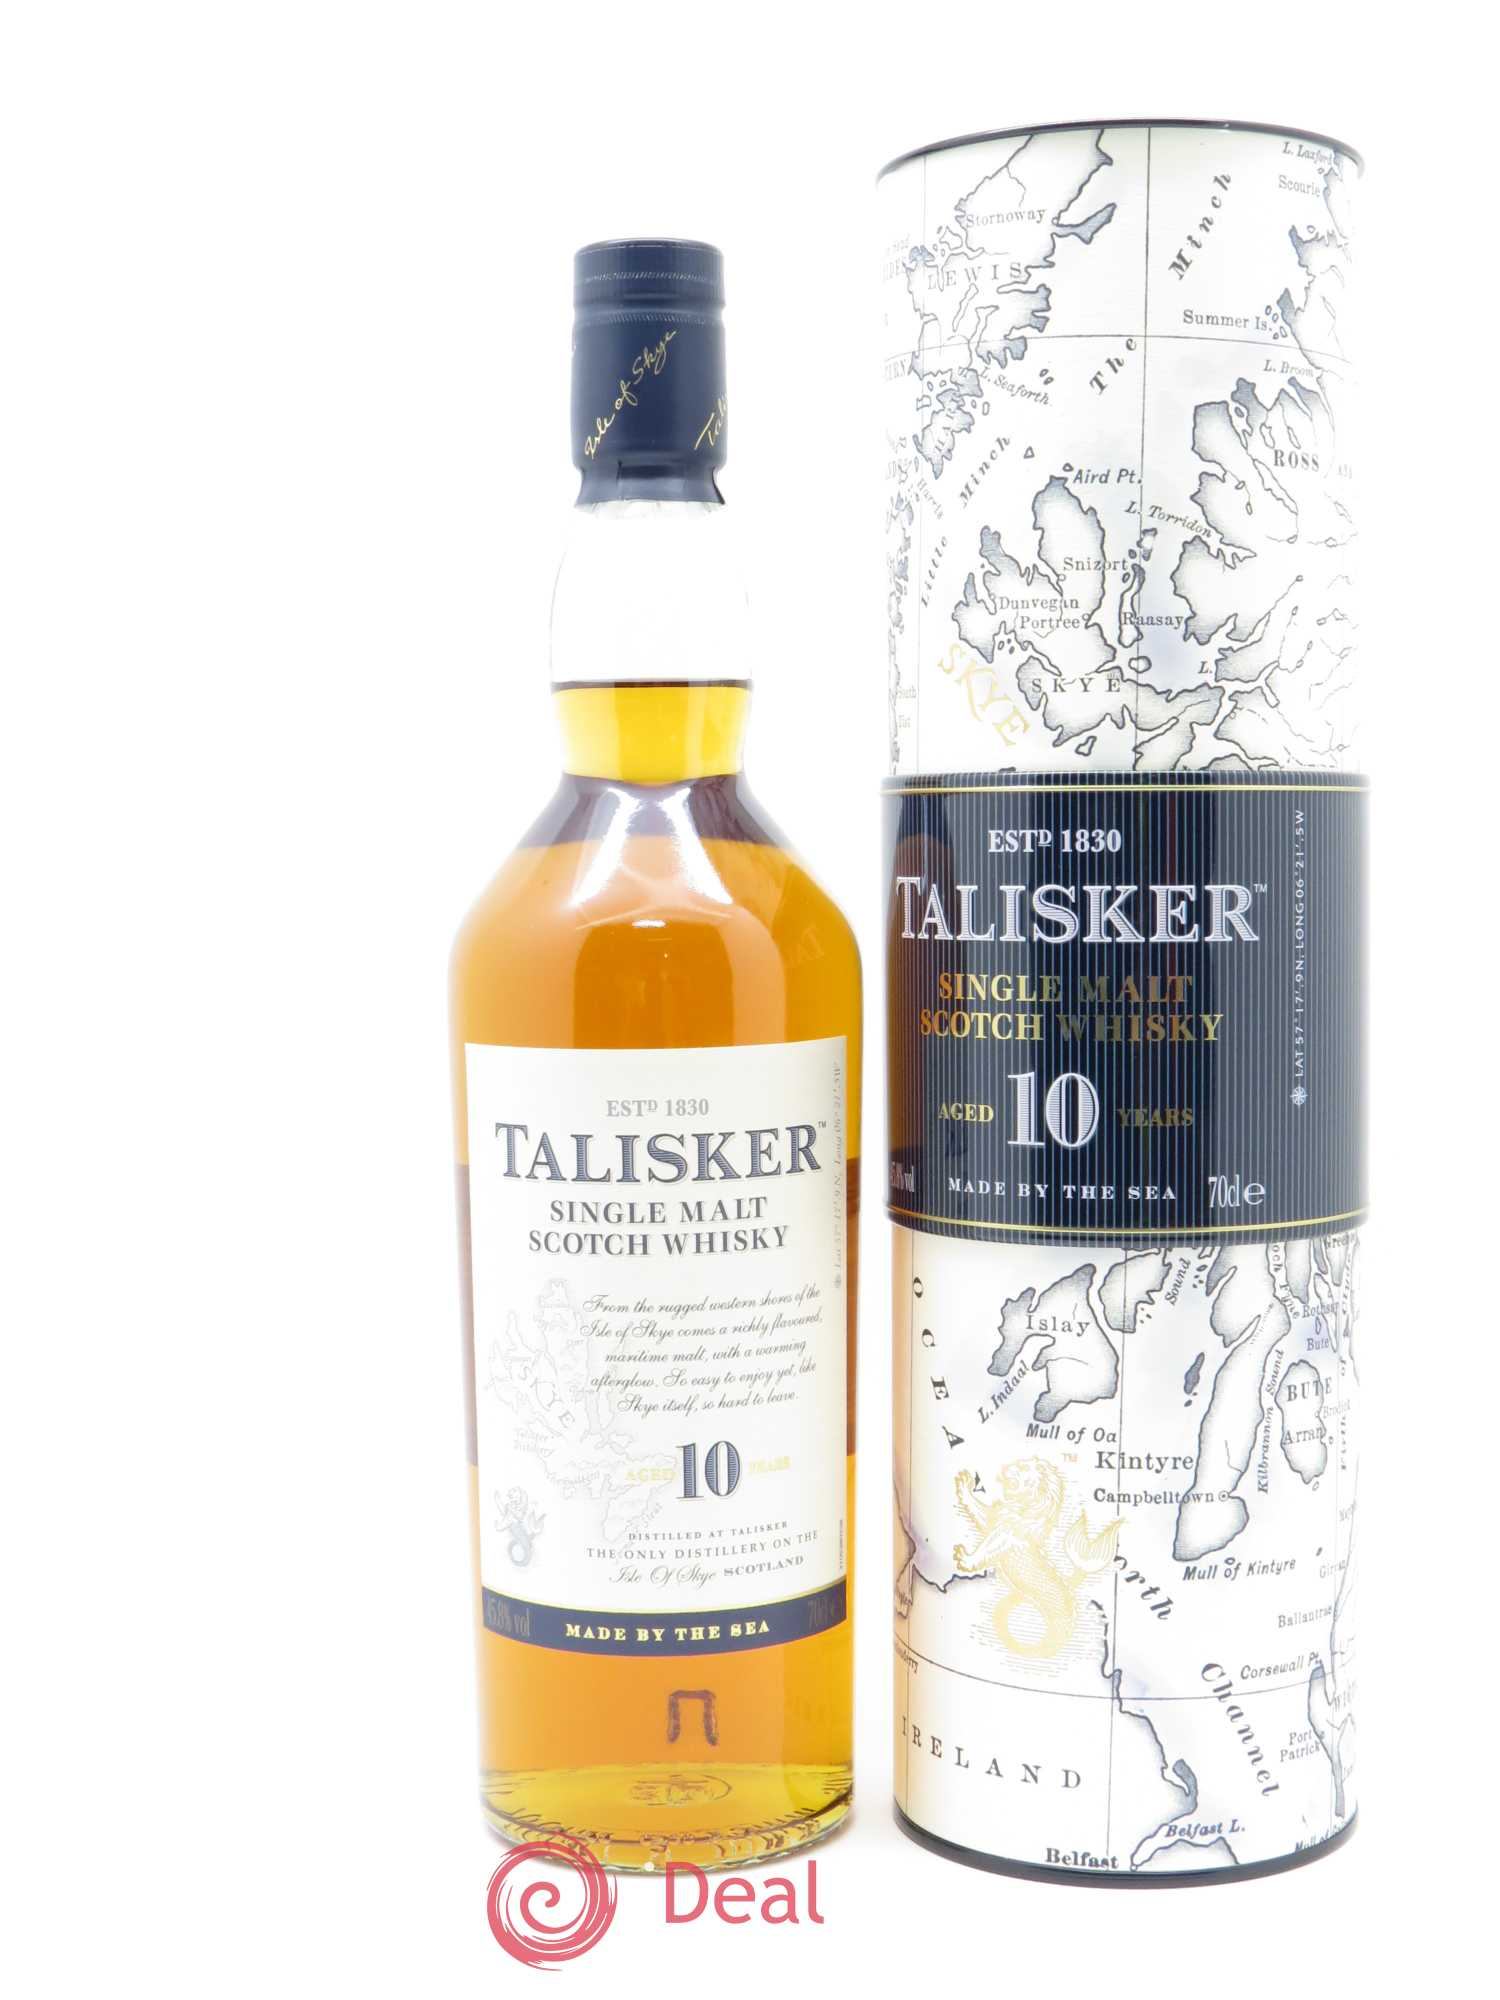 Whisky Talisker Single Malt Scotch Aged 10 Years Talisker   - Lot de 1 Bouteille